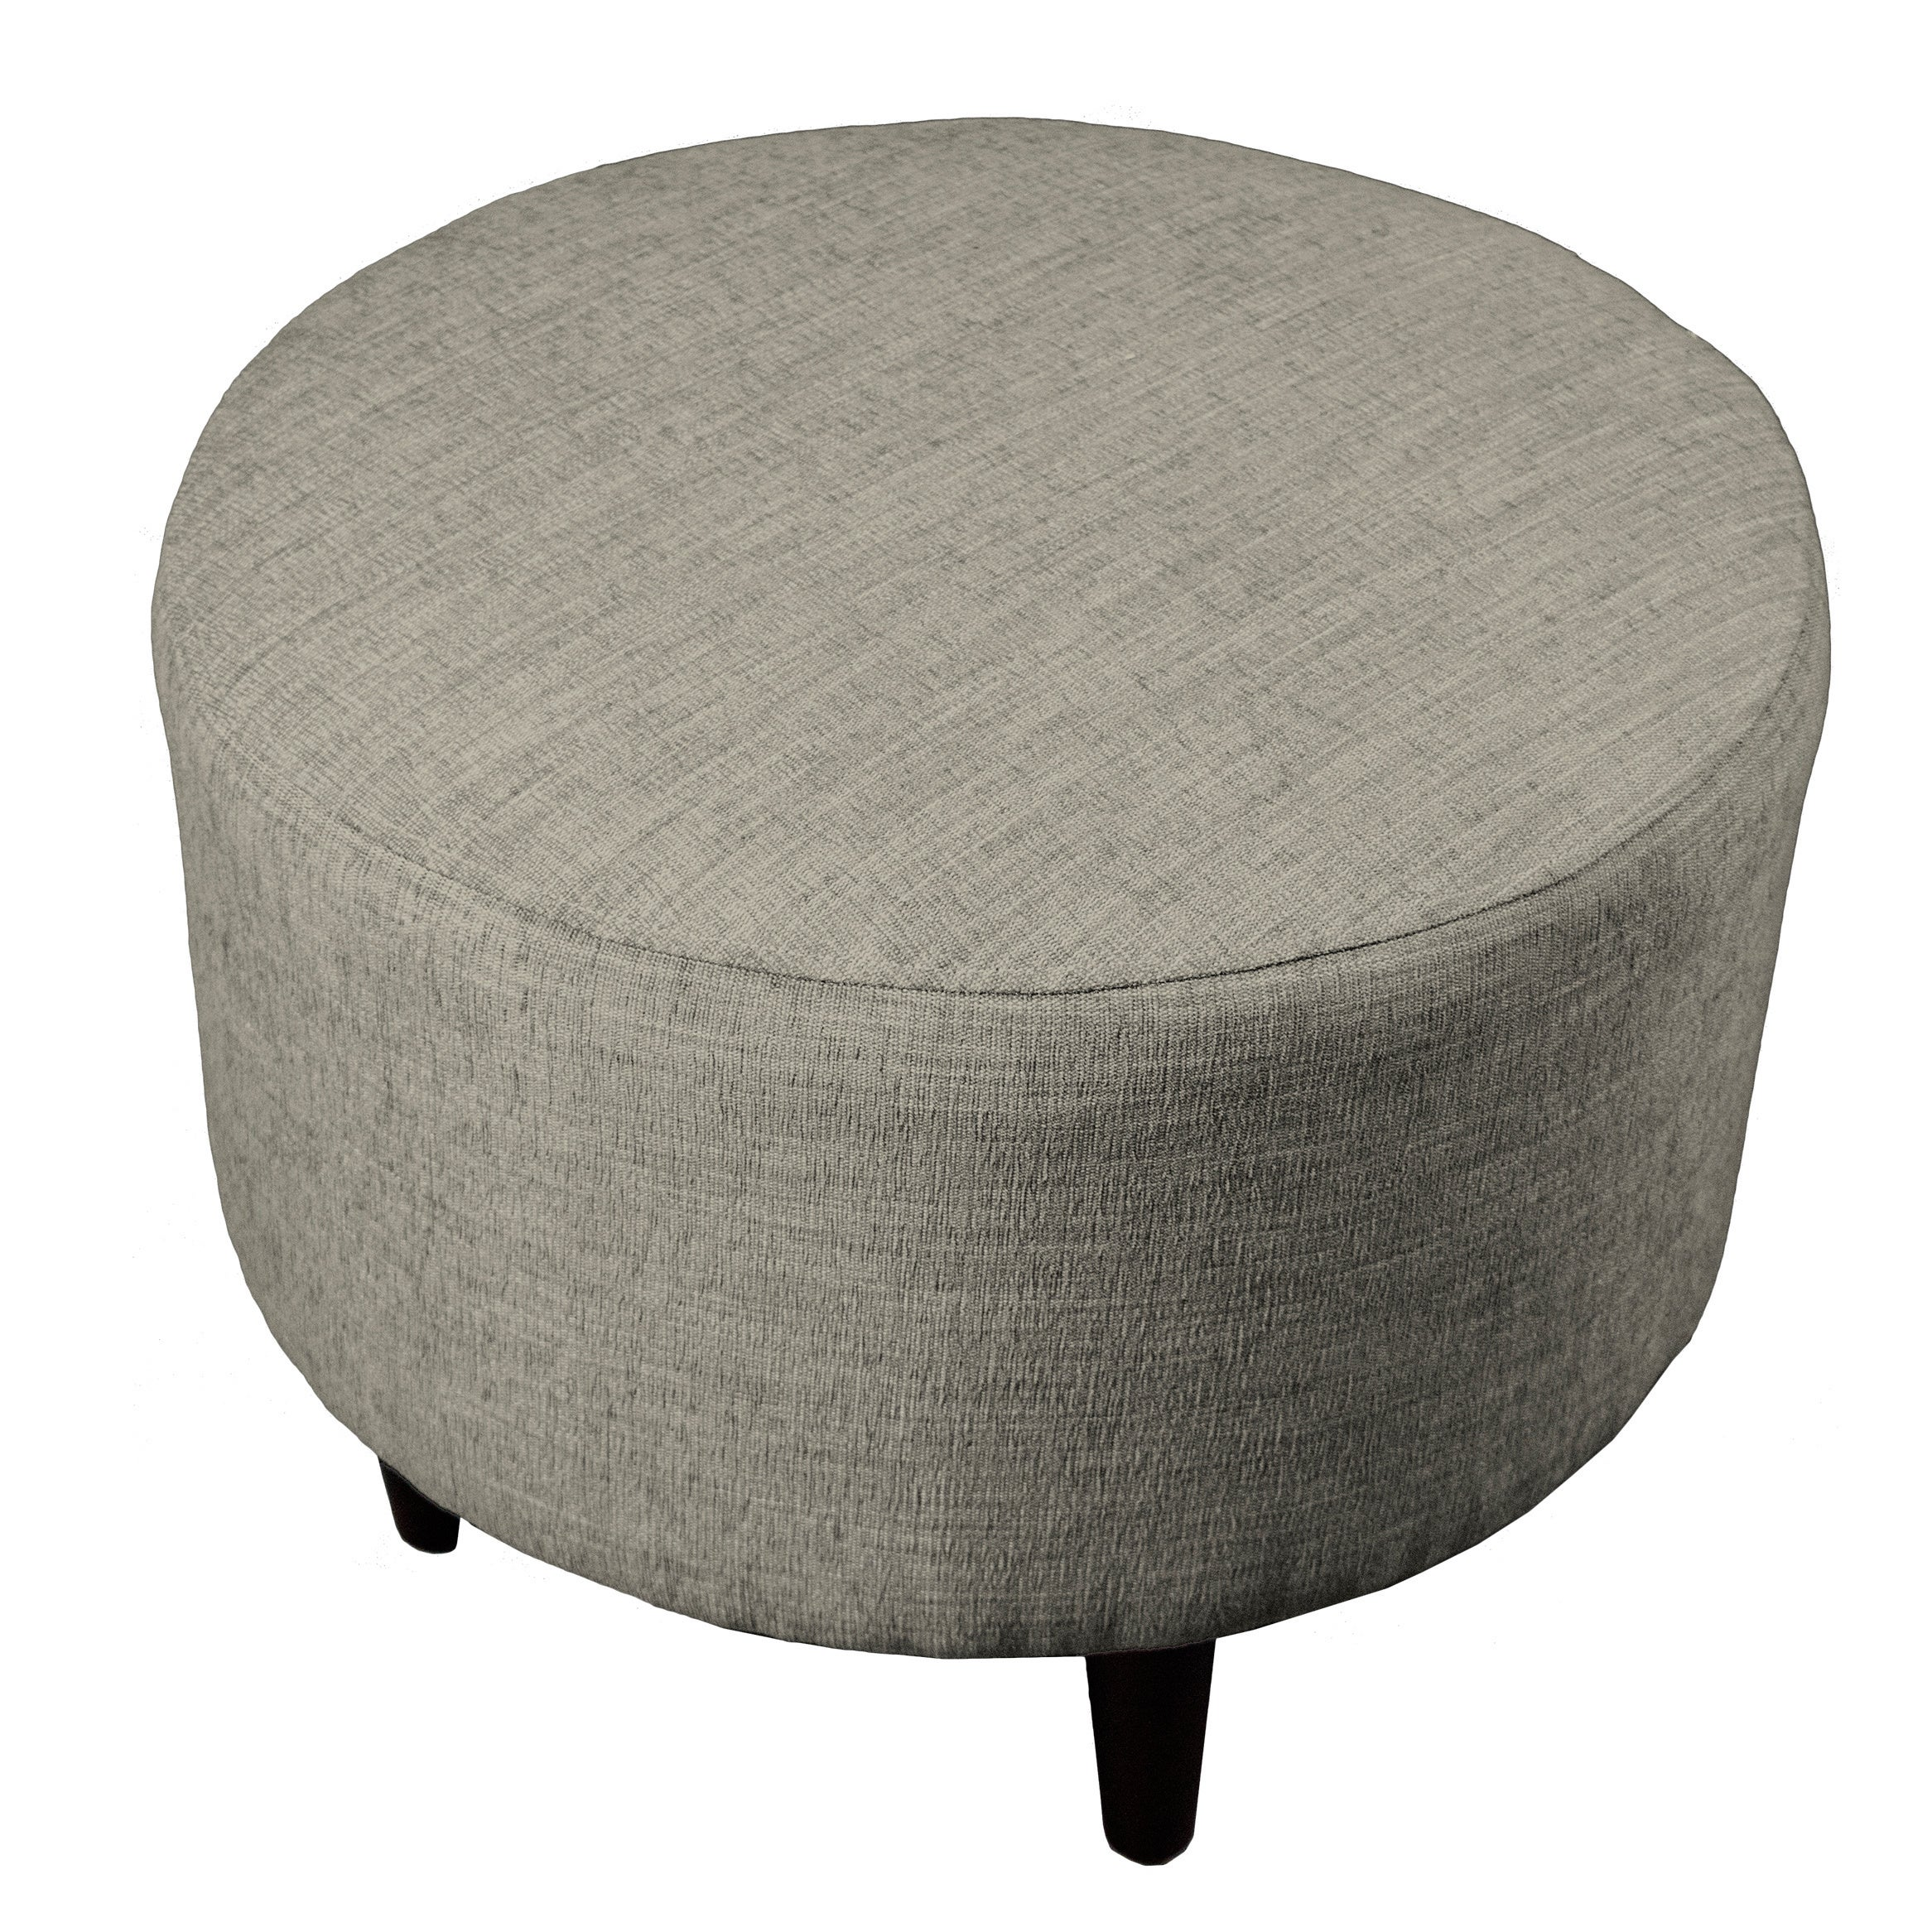 Shop mjl furniture sophia lucky round upholstered ottoman free shipping today overstock com 11381639